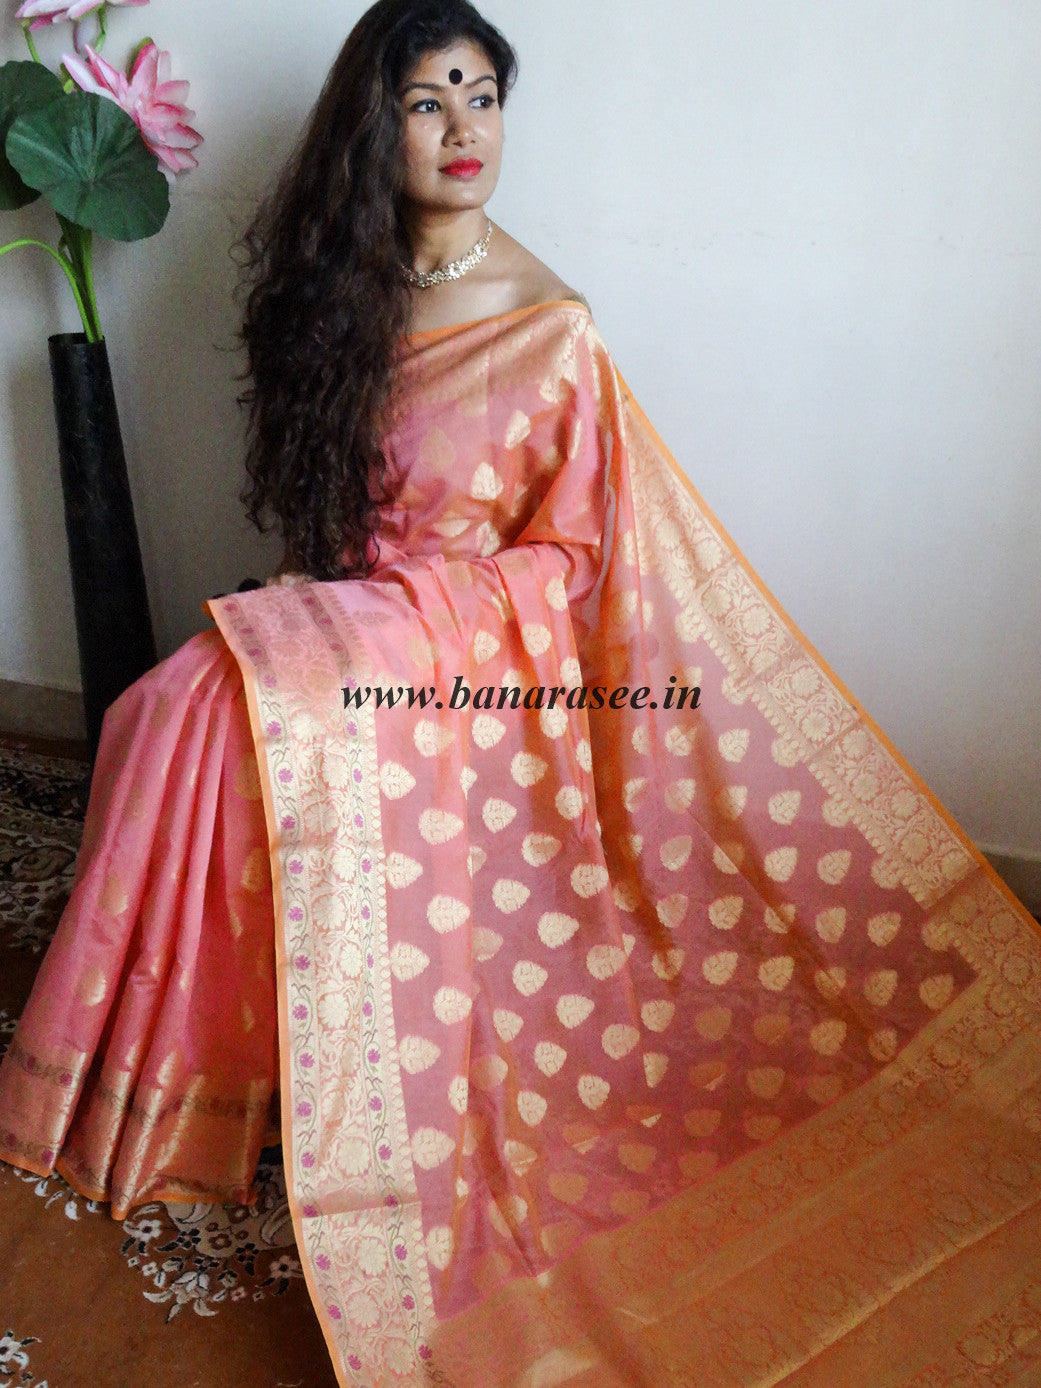 Banarasee/Banarasi Handloom Cotton Silk Mix Paithani Border Sari-Pink(Dual Tone)